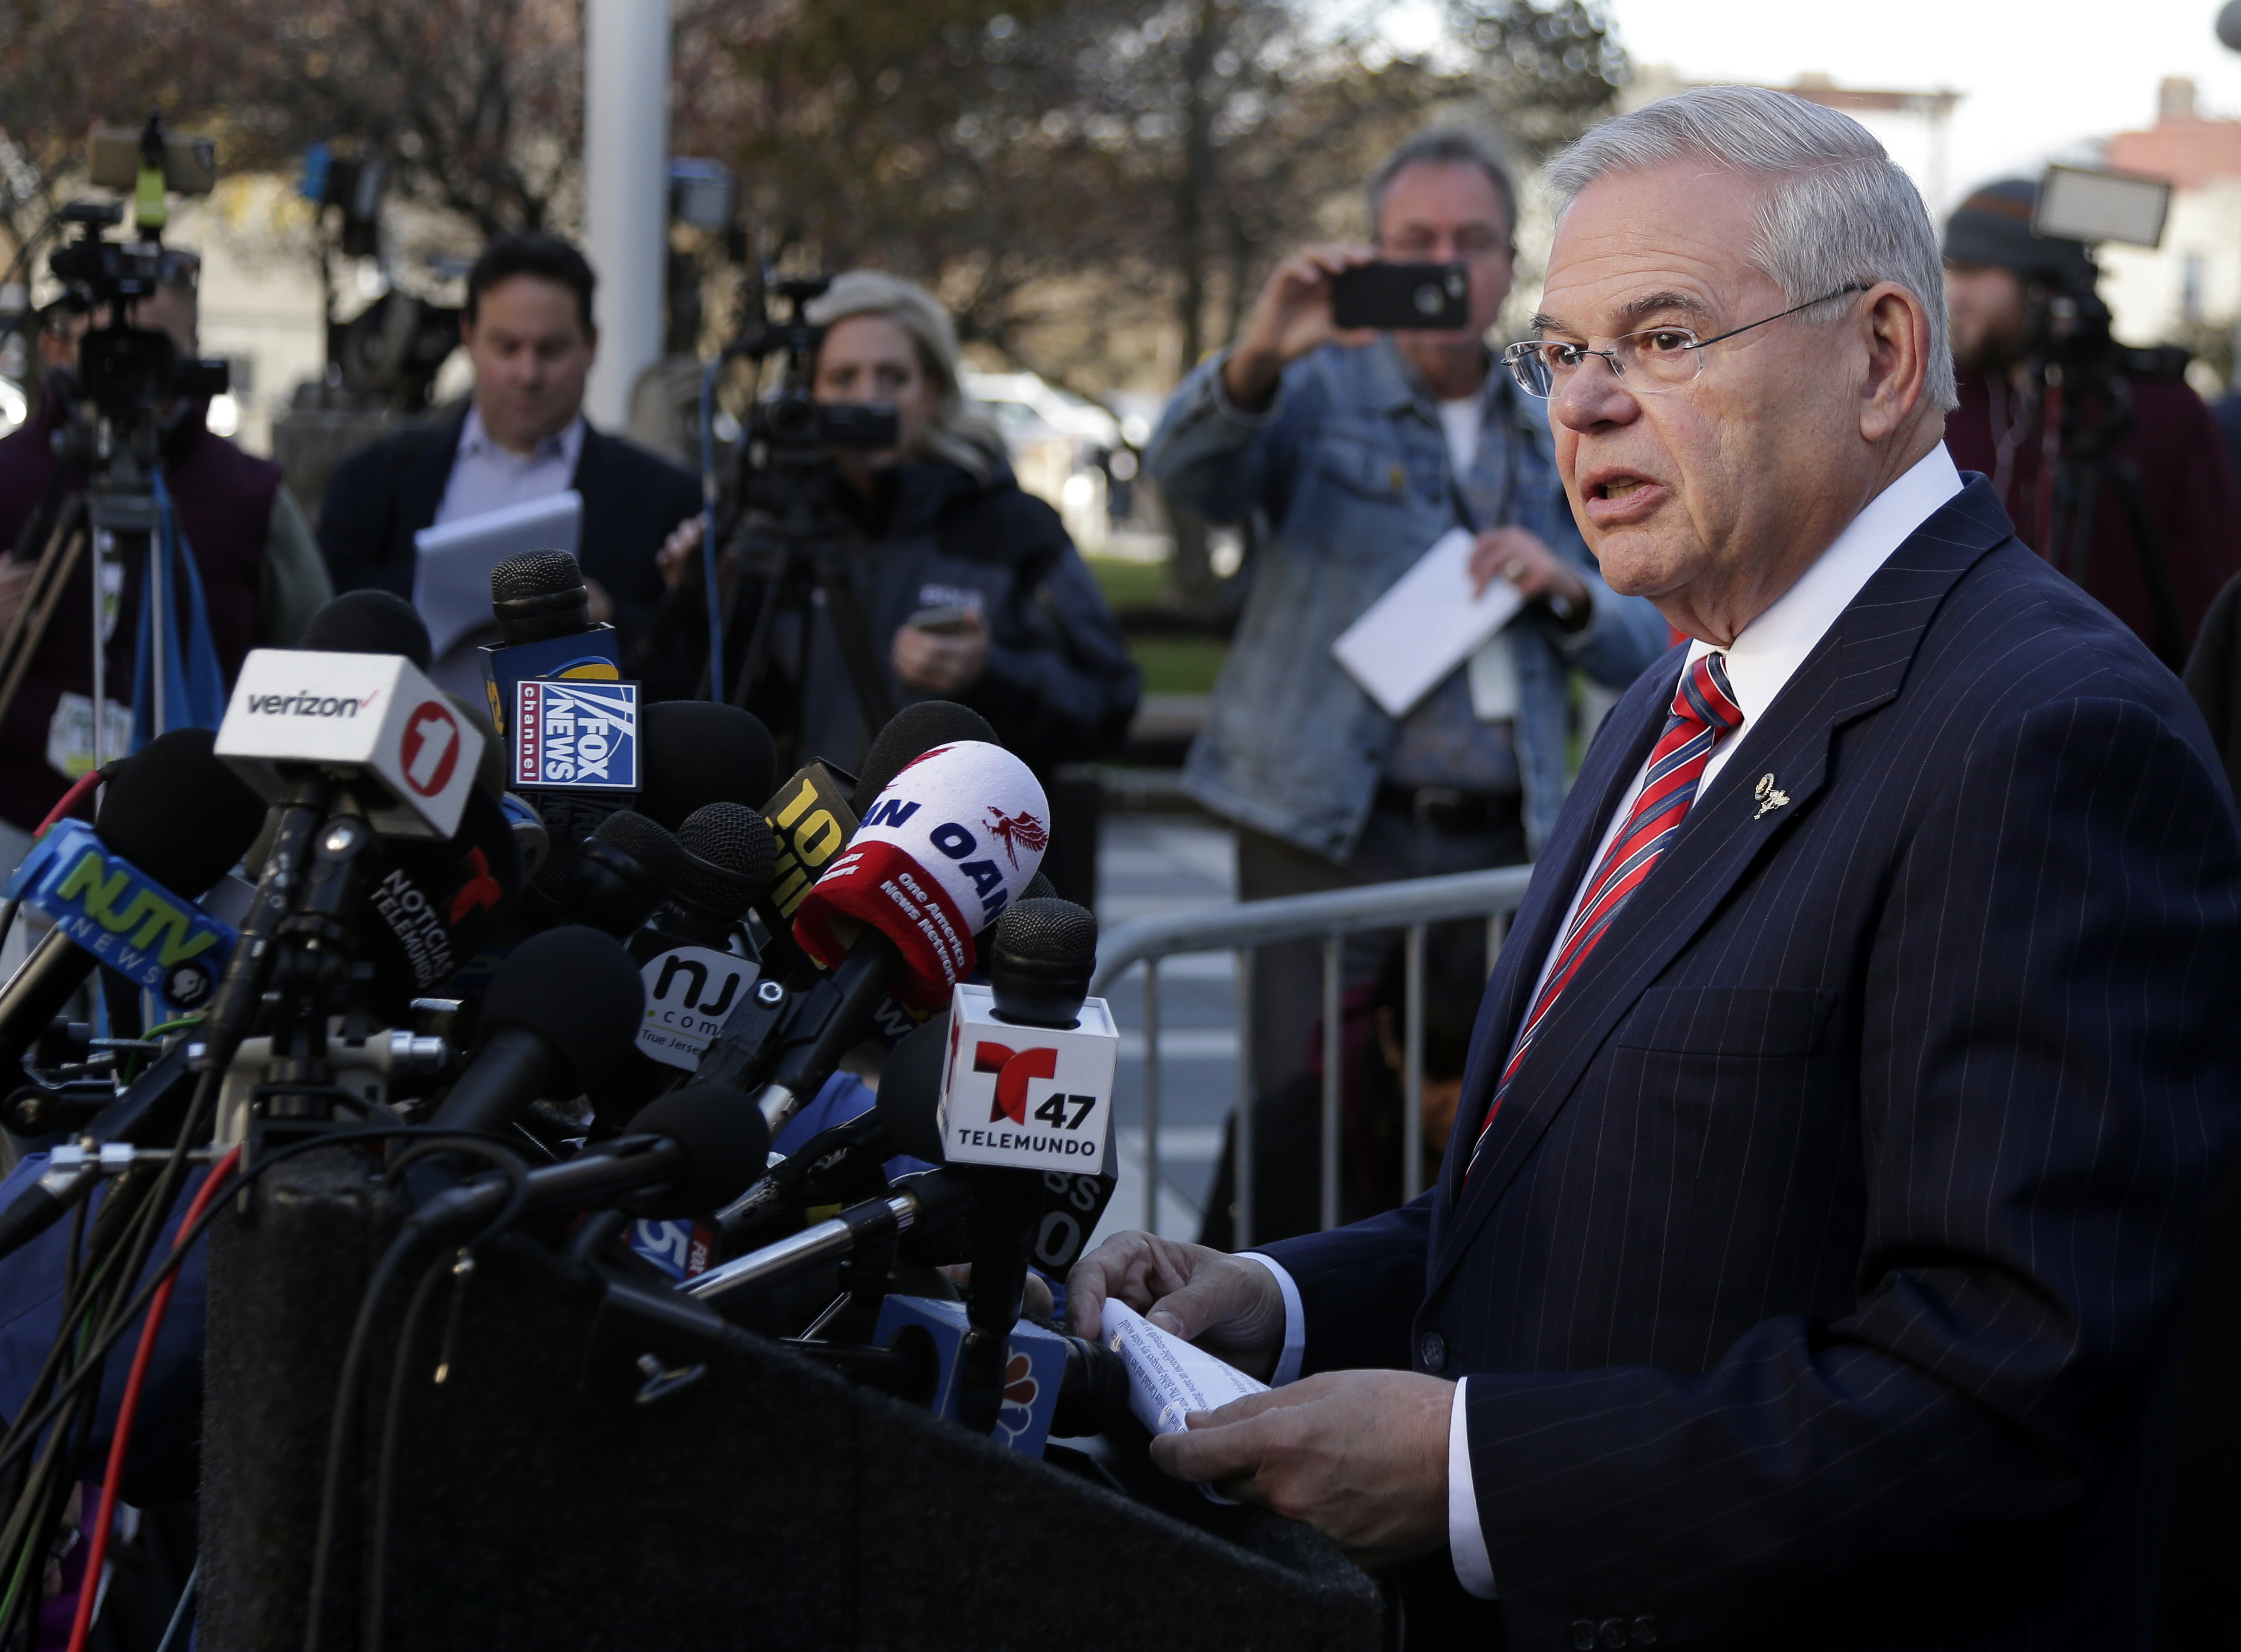 Sen. Bob Menendez, D-N.J., speaks to reporters in front of the courthouse in Newark, N.J., on Nov. 16, 2017. The federal bribery trial of Menendez ended in a mistrial when the jury said it was deadlocked on all charges against him.